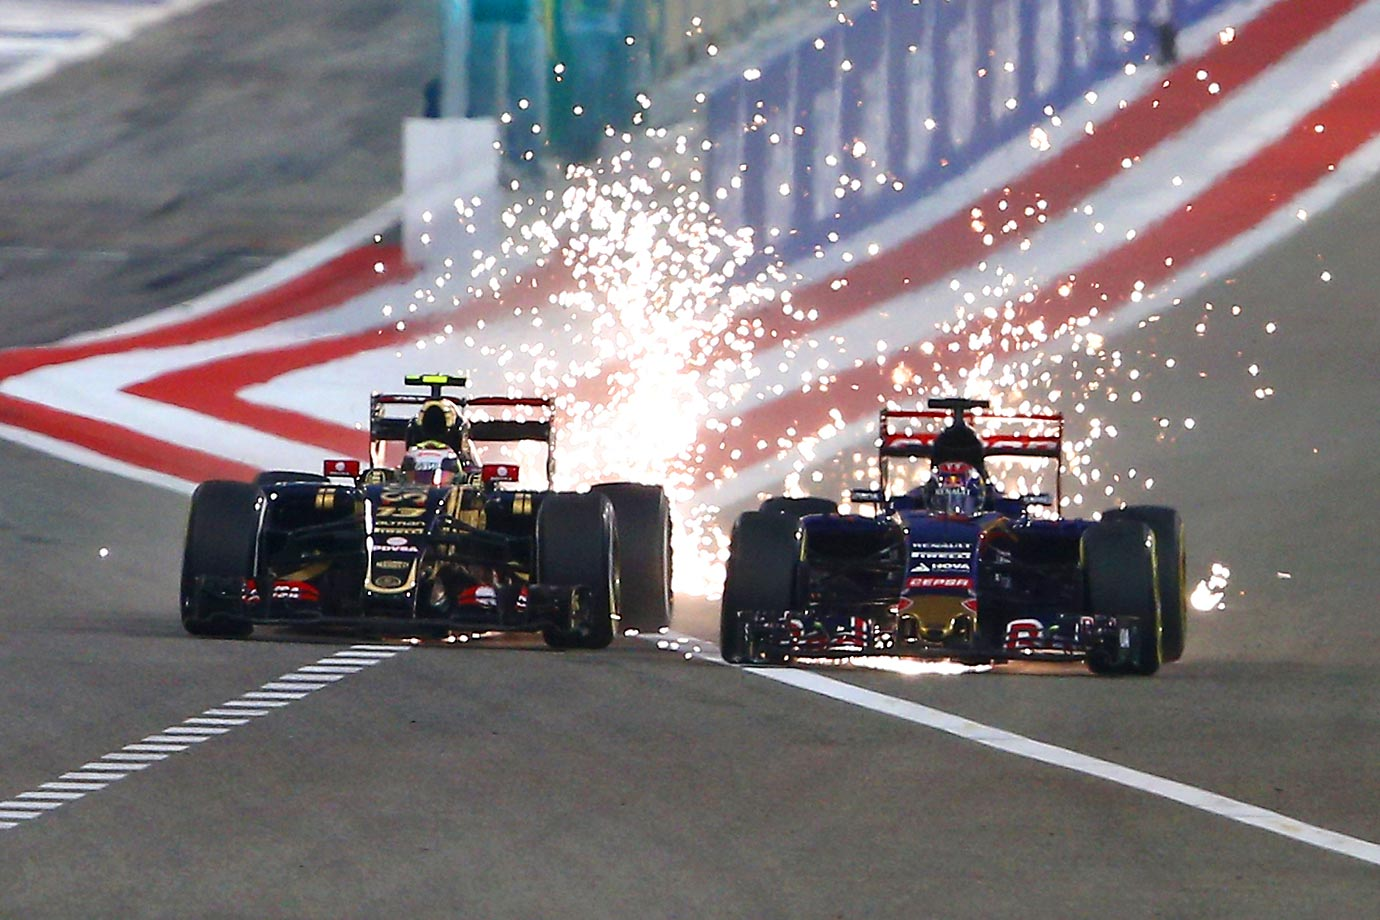 Pastor Maldonado (left) and Lotus and Max Verstappen create sparks during the Bahrain Formula One Grand Prix at Bahrain.